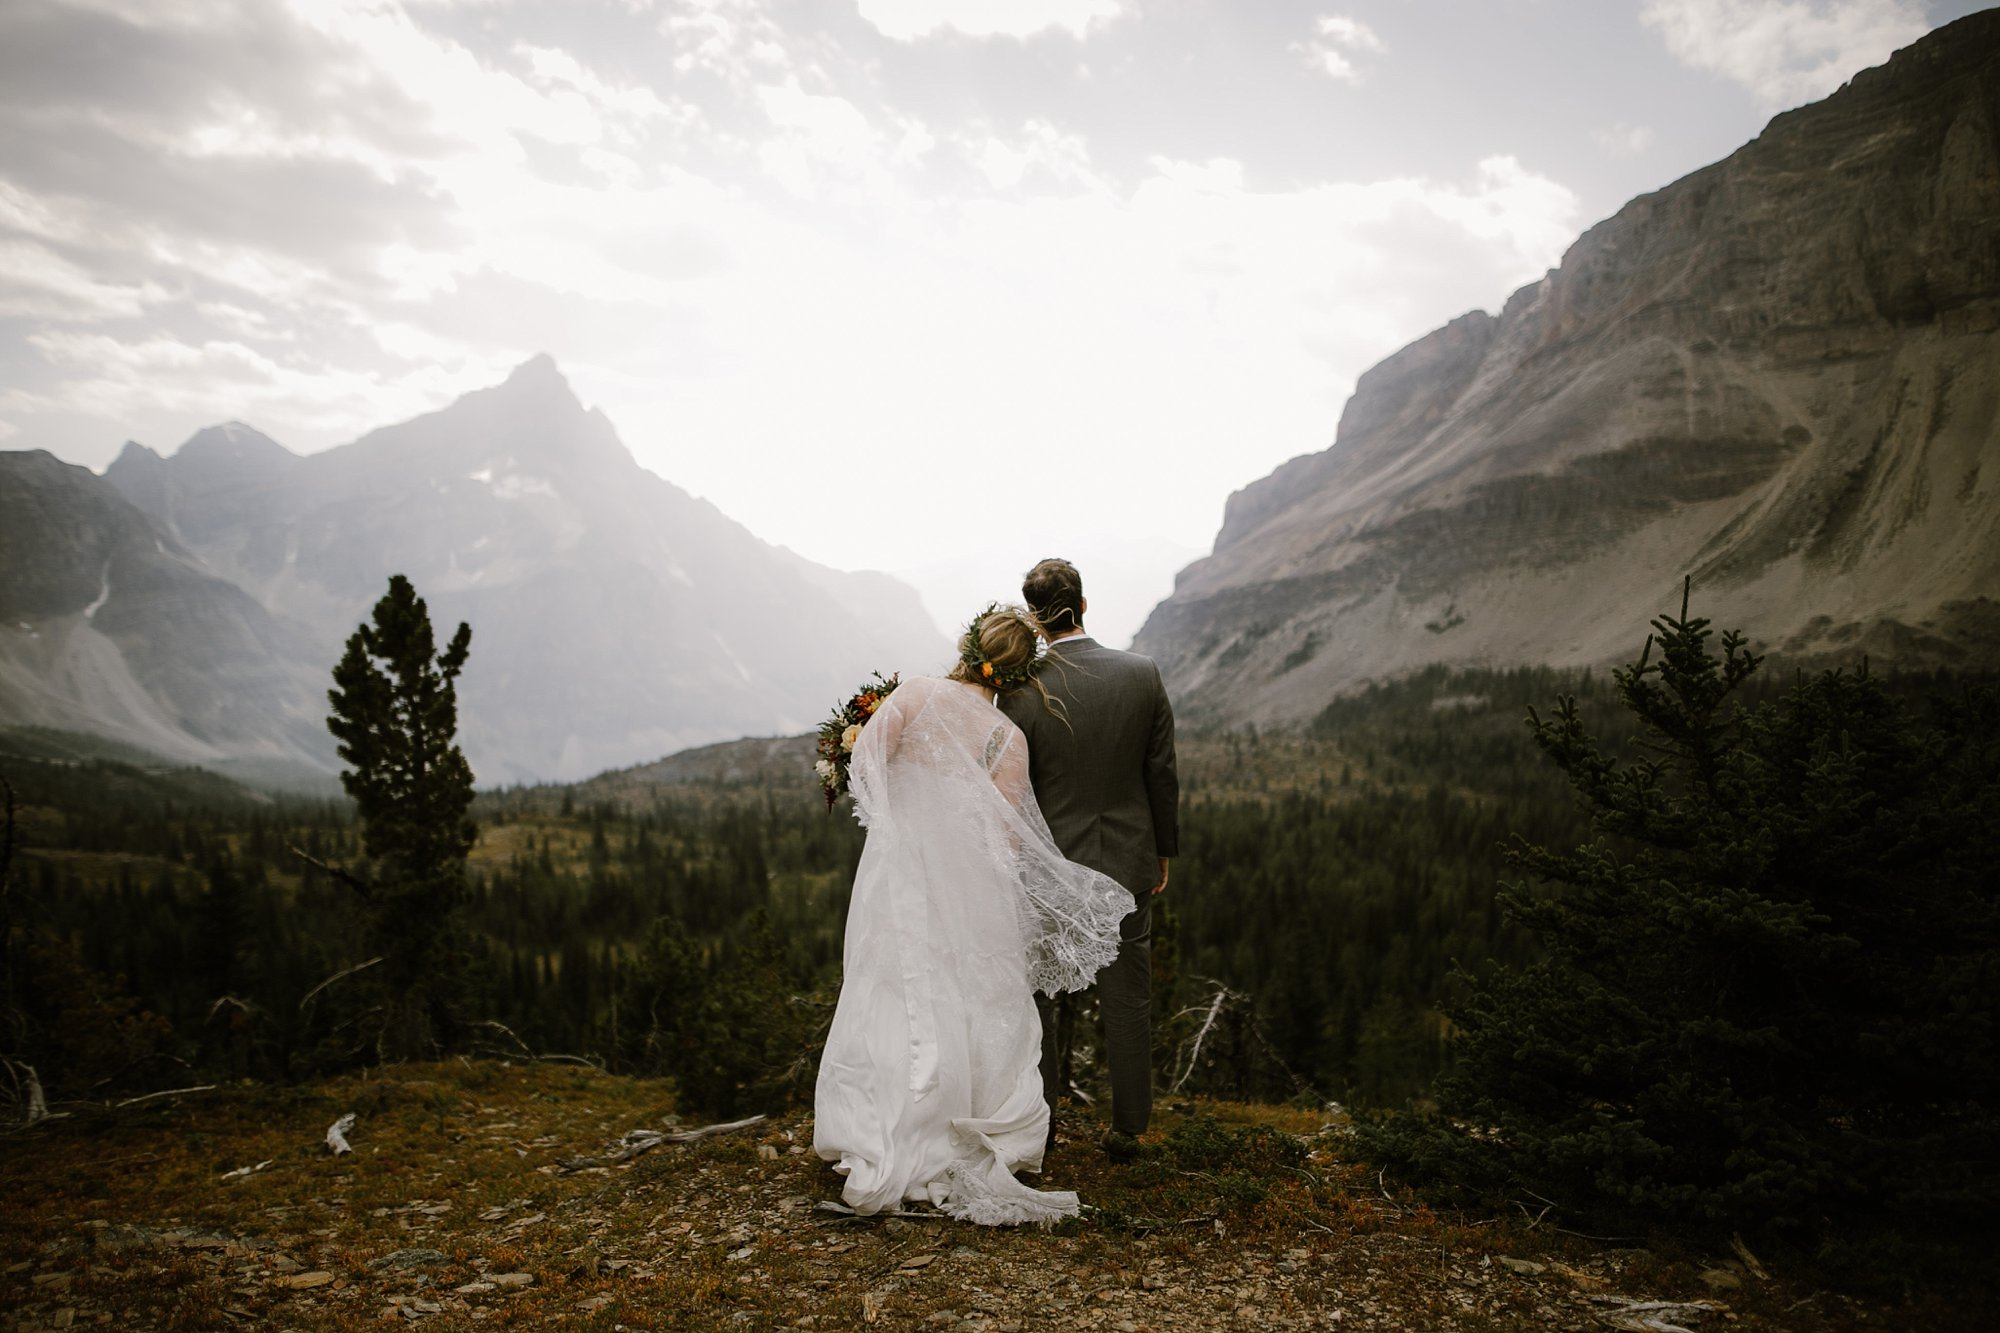 banff-canada-elopement-wedding_0015.jpg